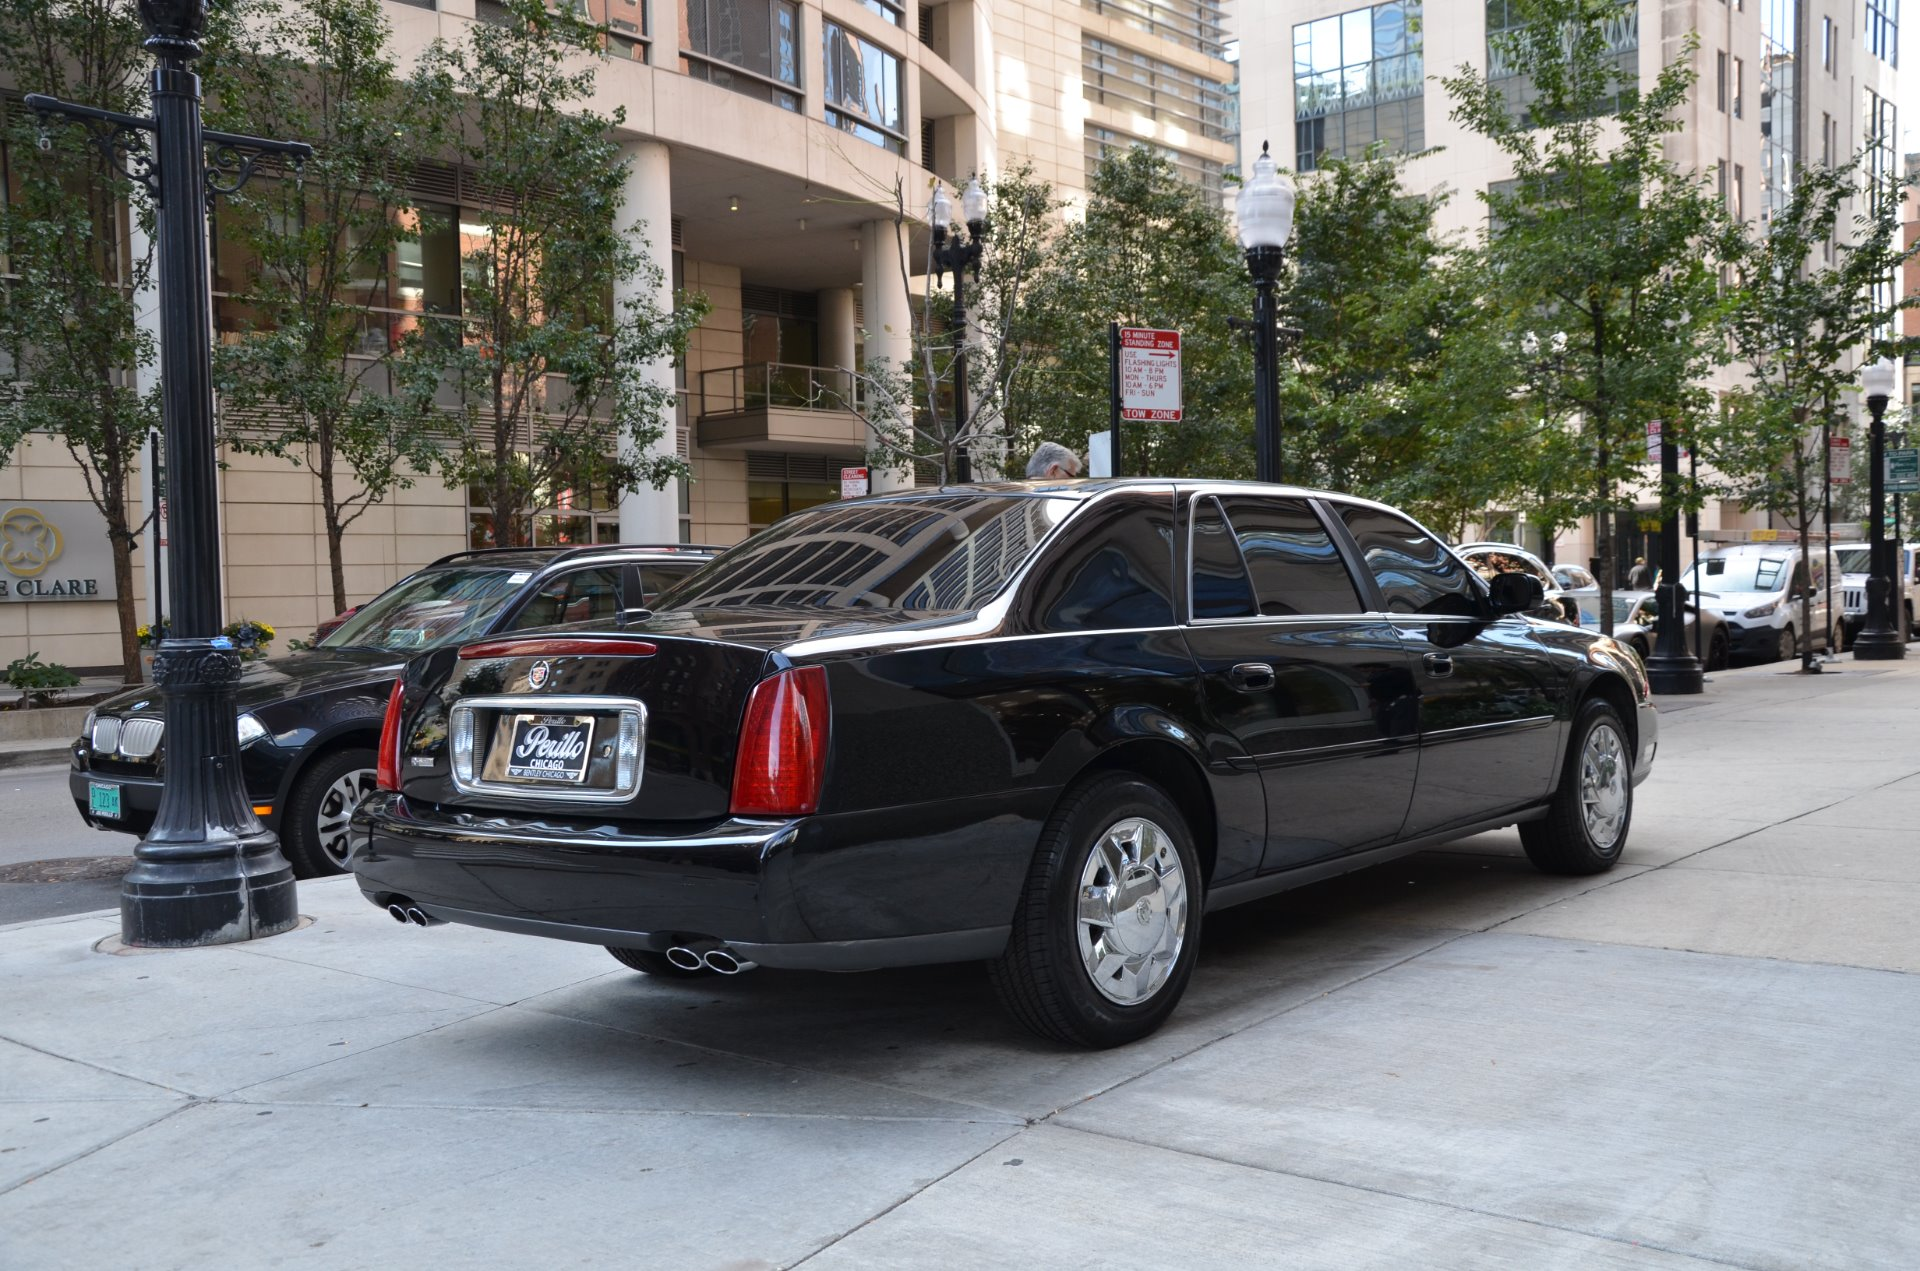 2004 Cadillac DTS Armored Limo Stock # GC2244 for sale near